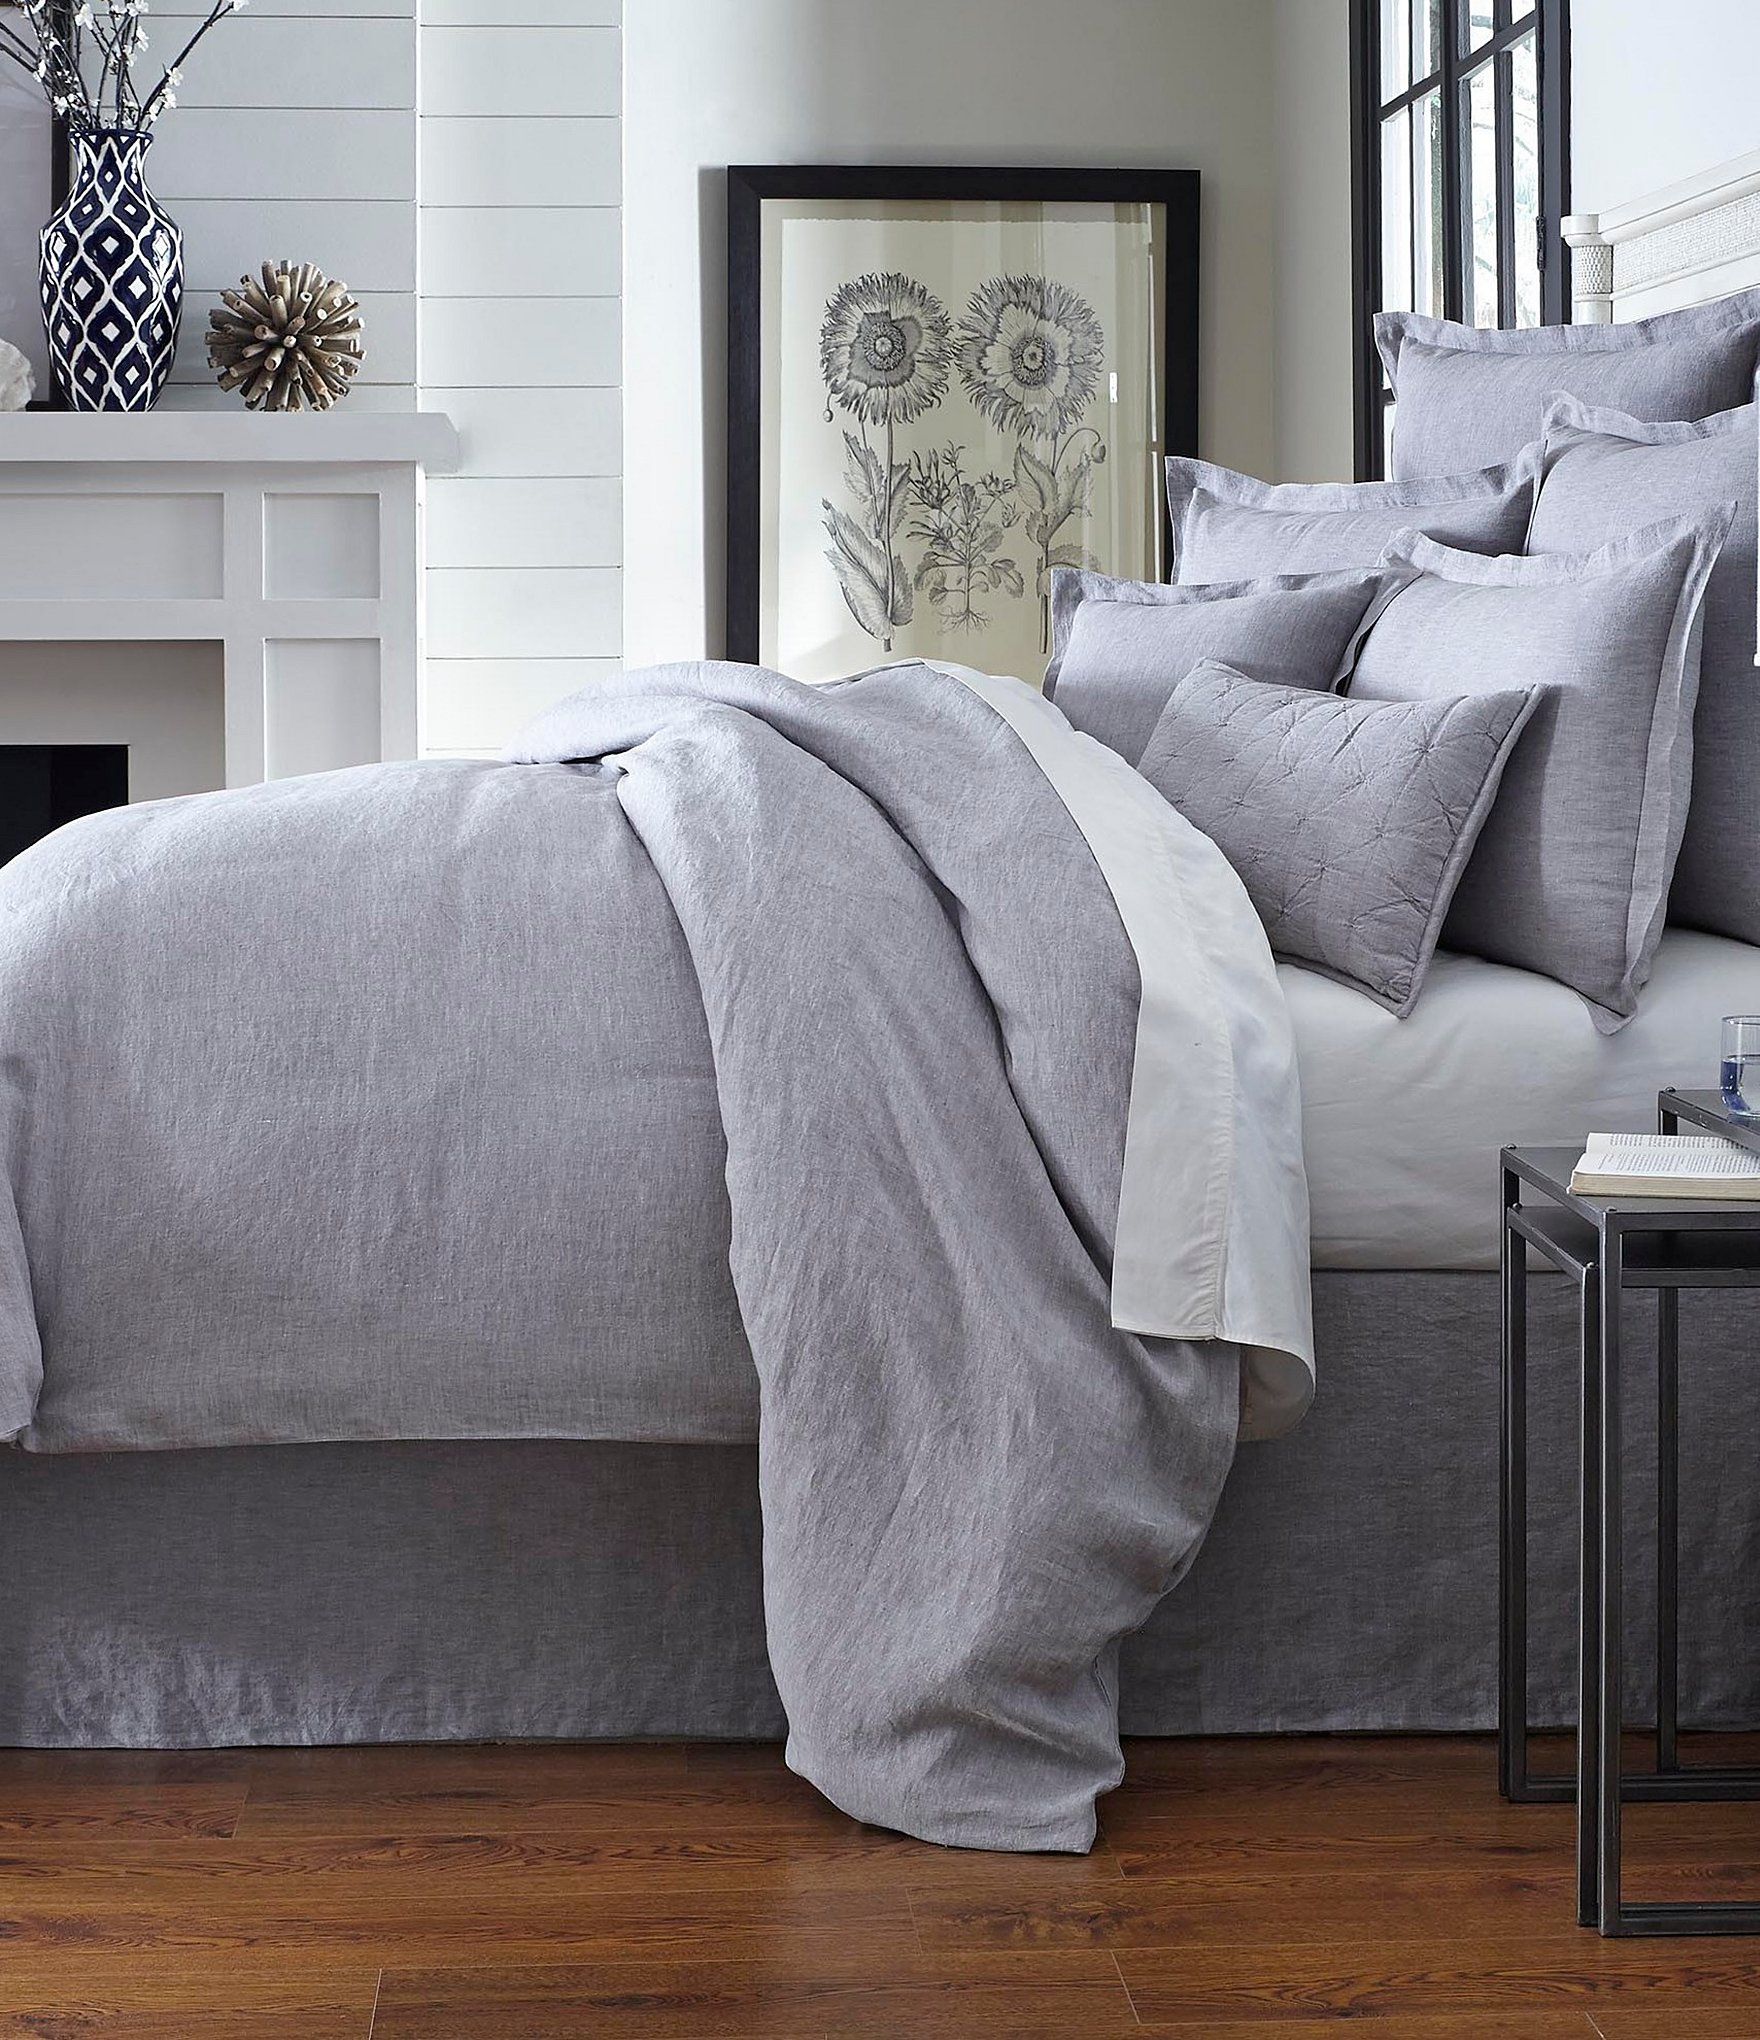 linens charcoal cu furniture singapore sg originals duvet bed collections grey linen dv duvets k bedroom set